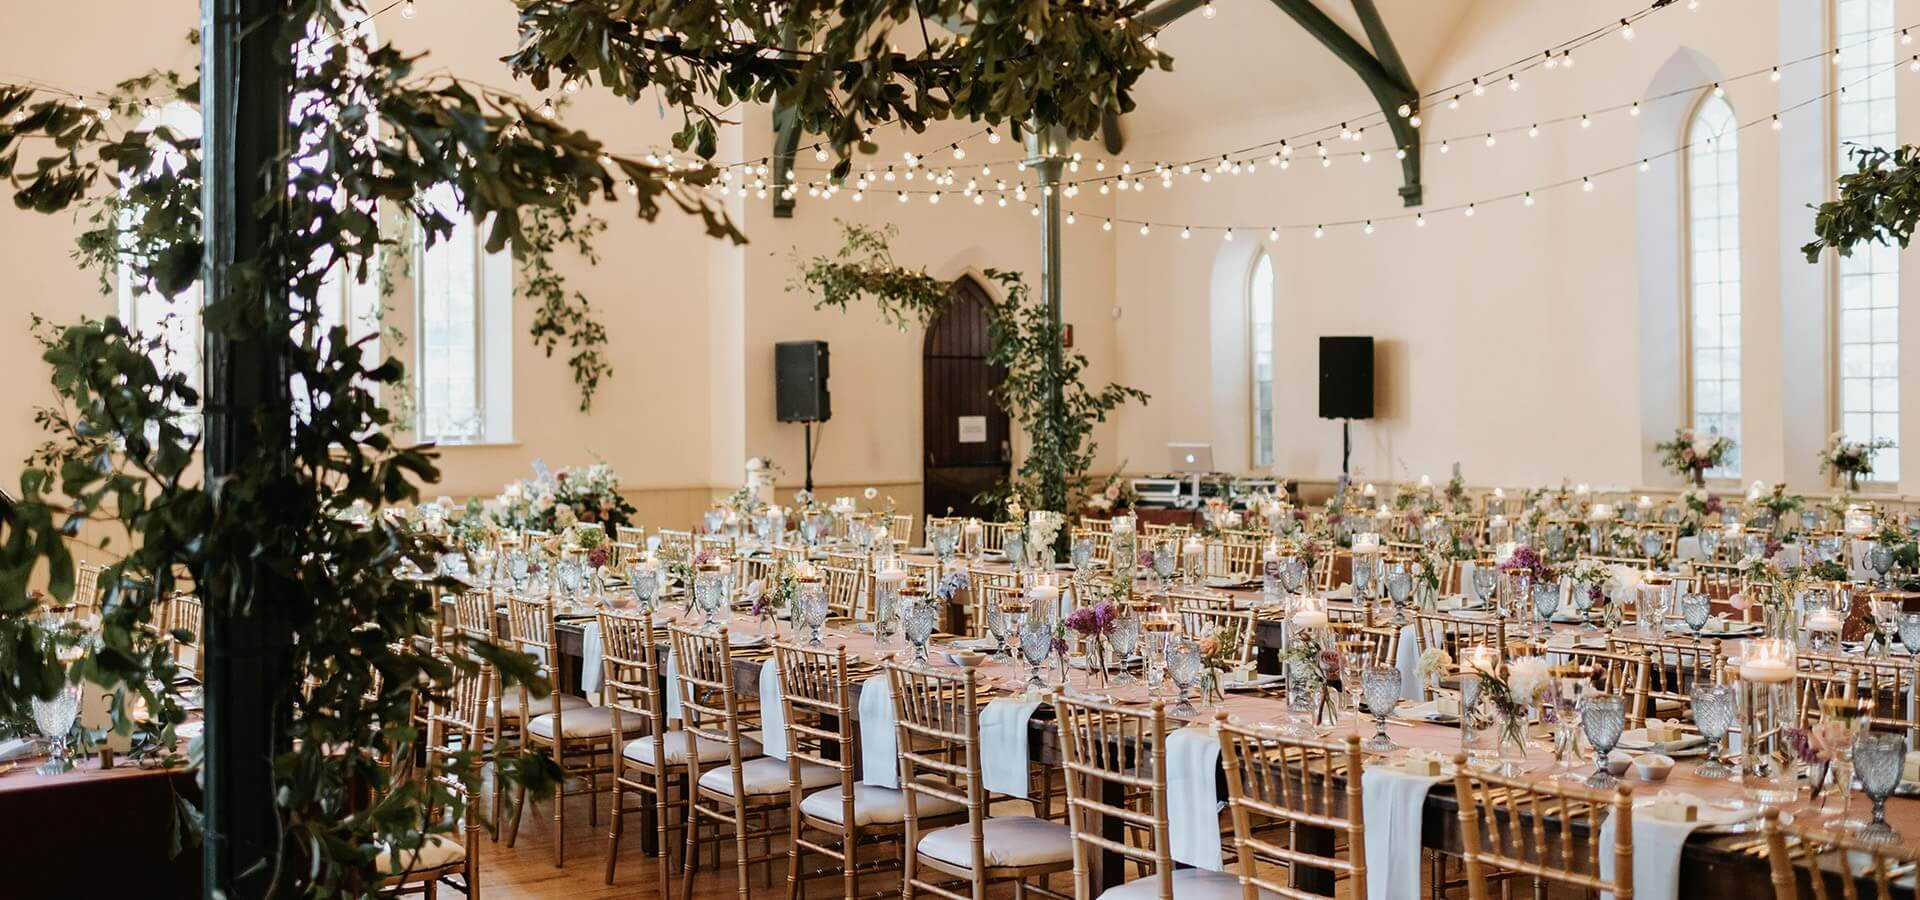 Hero image for 15 Toronto Event Venues Perfect for Weddings For up to 150 Guests